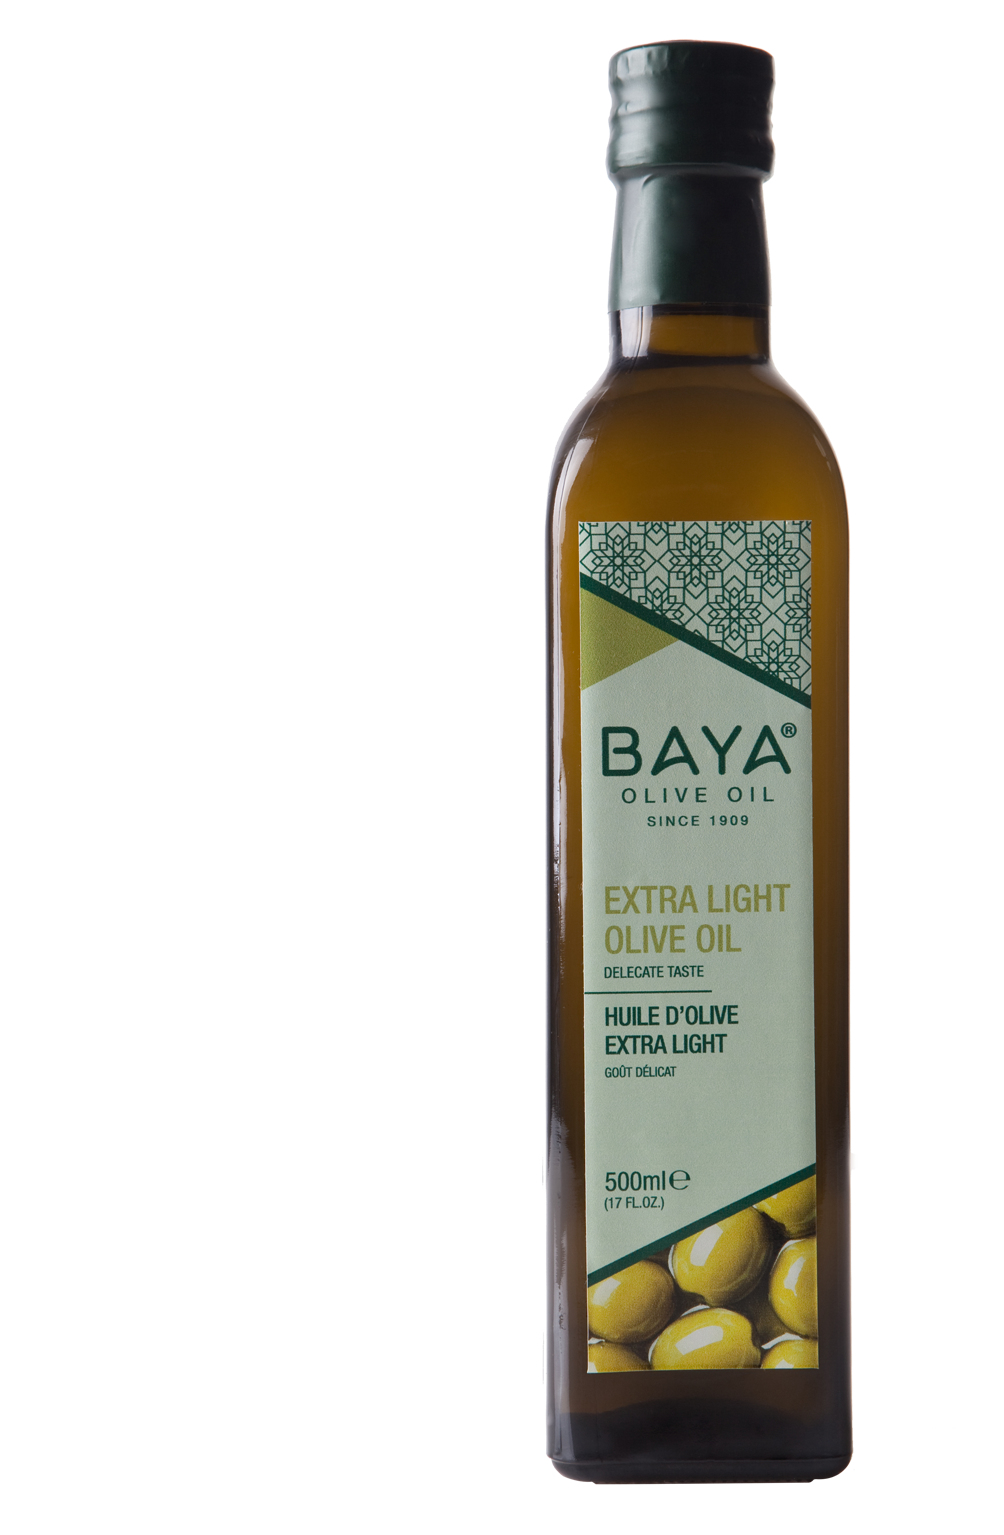 HUILE D'OLIVE EXTRA LIGHT